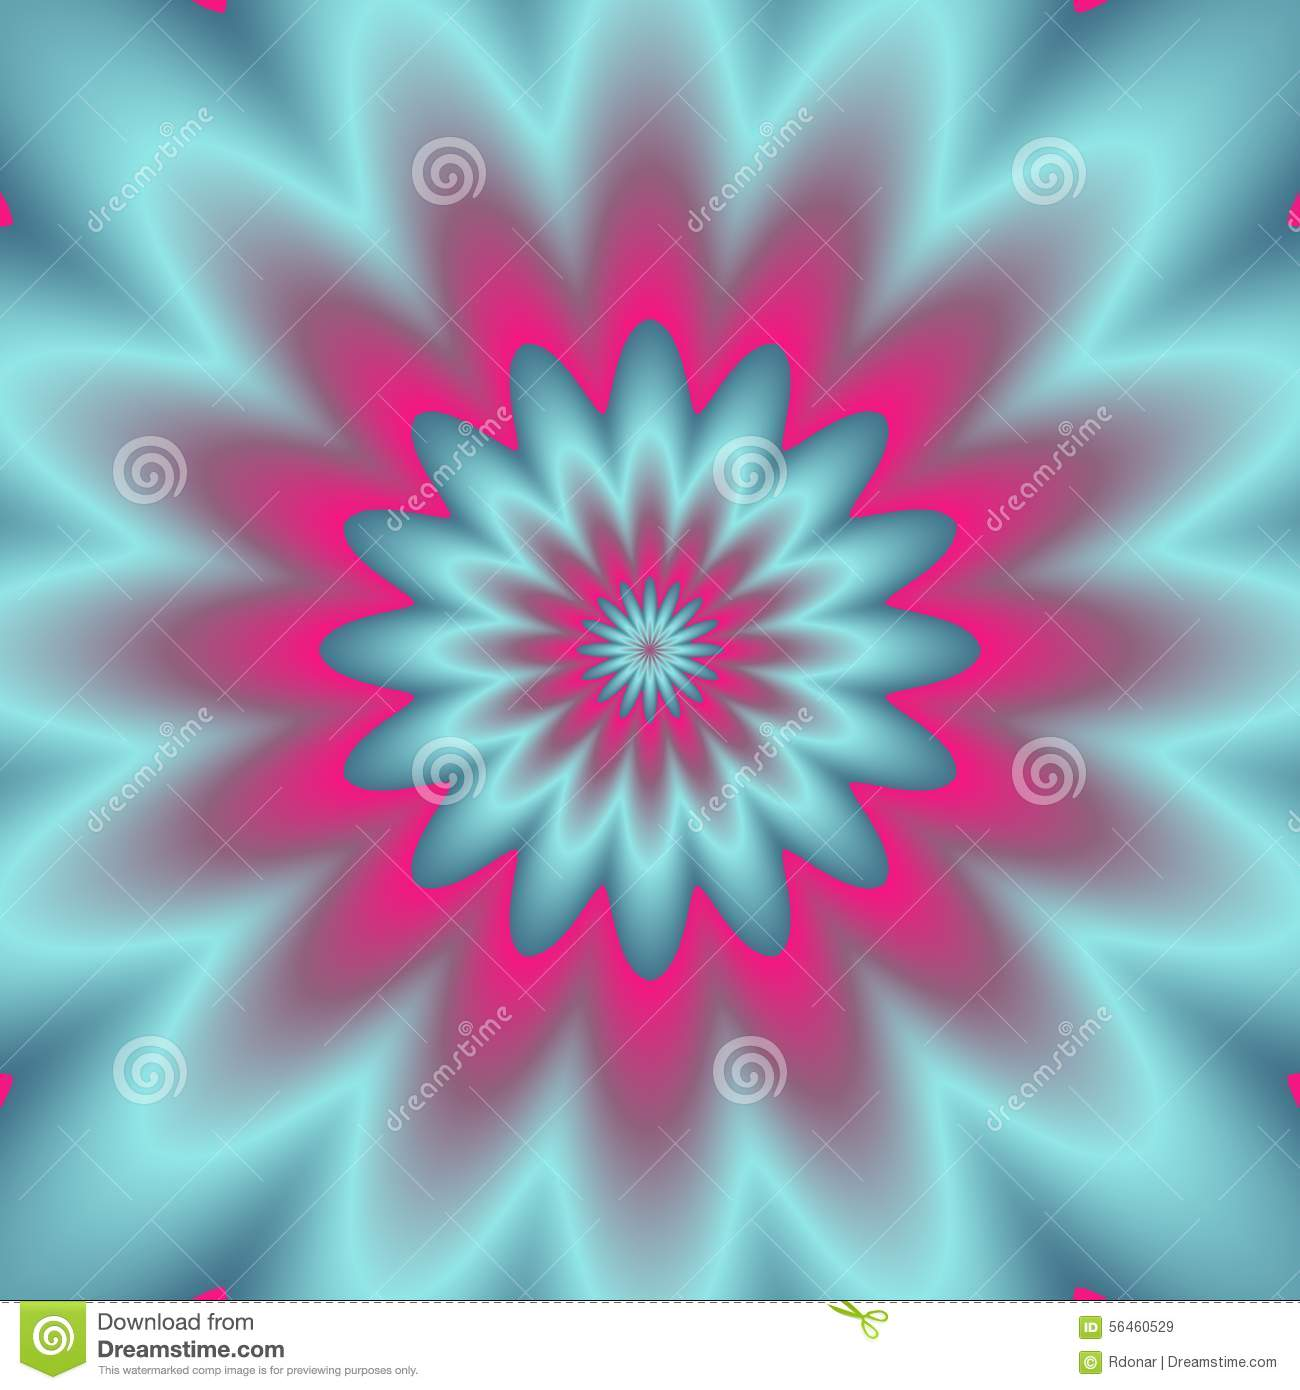 Neon Explosion Digital Abstract Image Psychedelic Flower Design Blue Green Pink Colors Extended Background Vector Stock